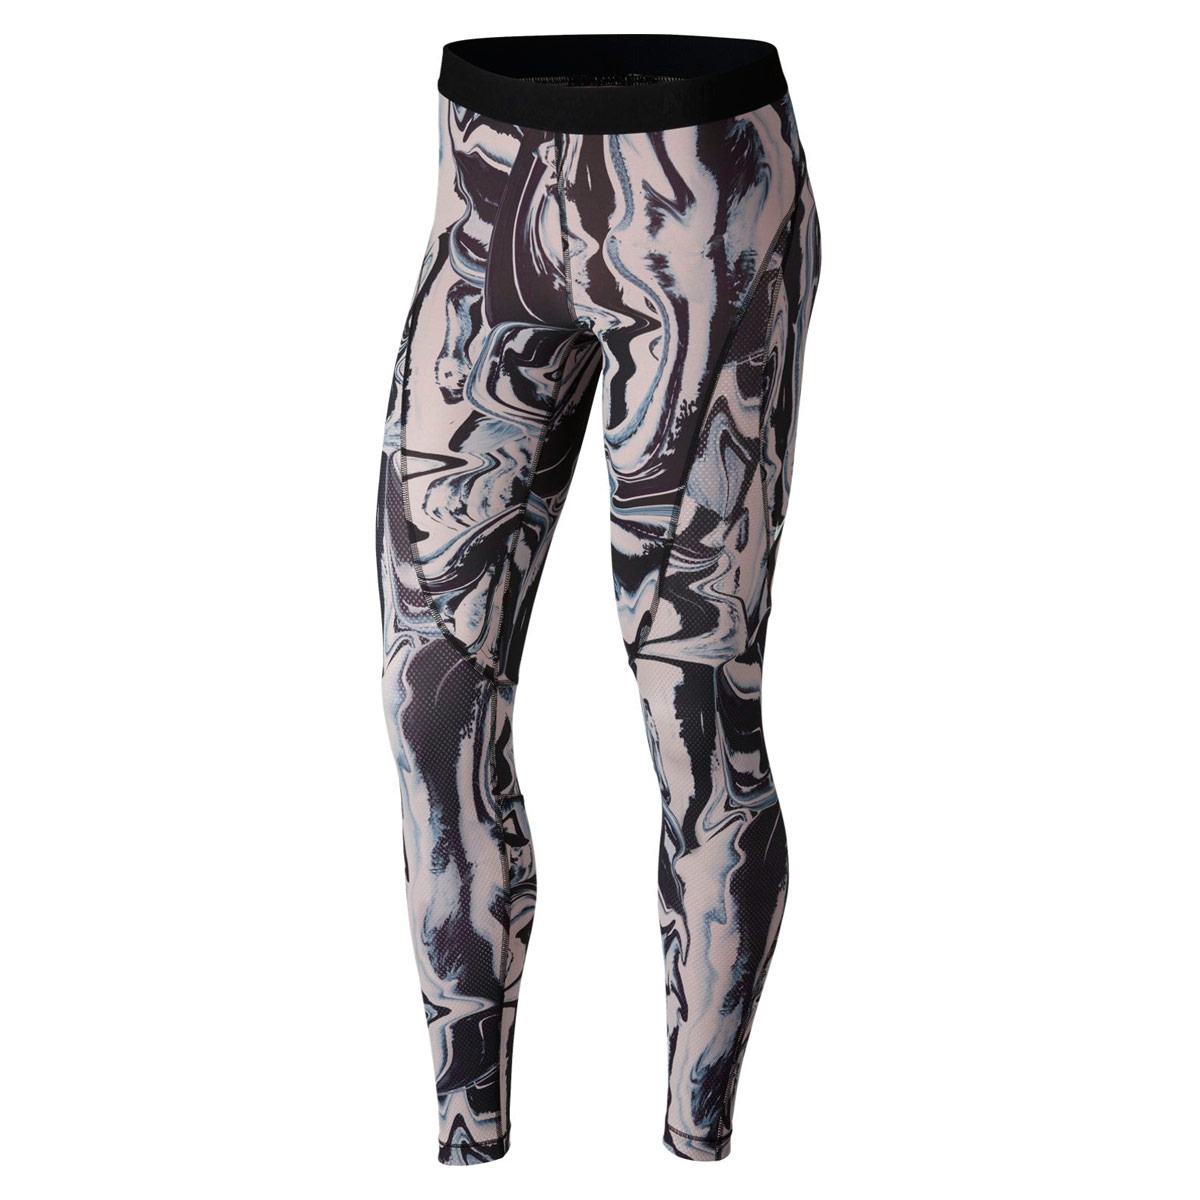 15ae2de8f946a Nike Pro HyperCool Tights - Fitness trousers for Women - Grey | 21RUN